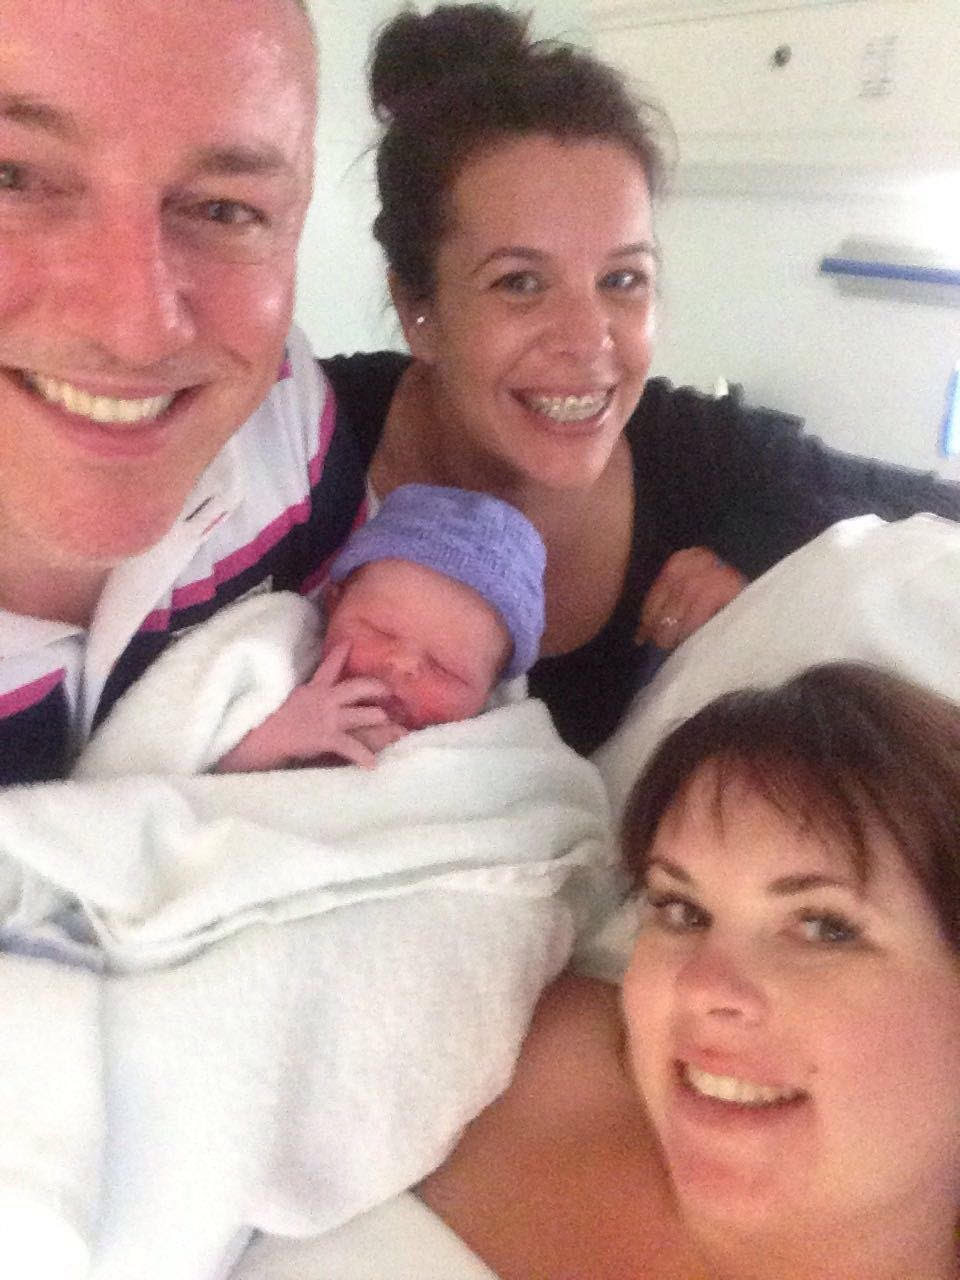 Laura's husband, Graham, and her best friend were her birth partners. Just look at those wonderful smiles - happiest of days! What a team!